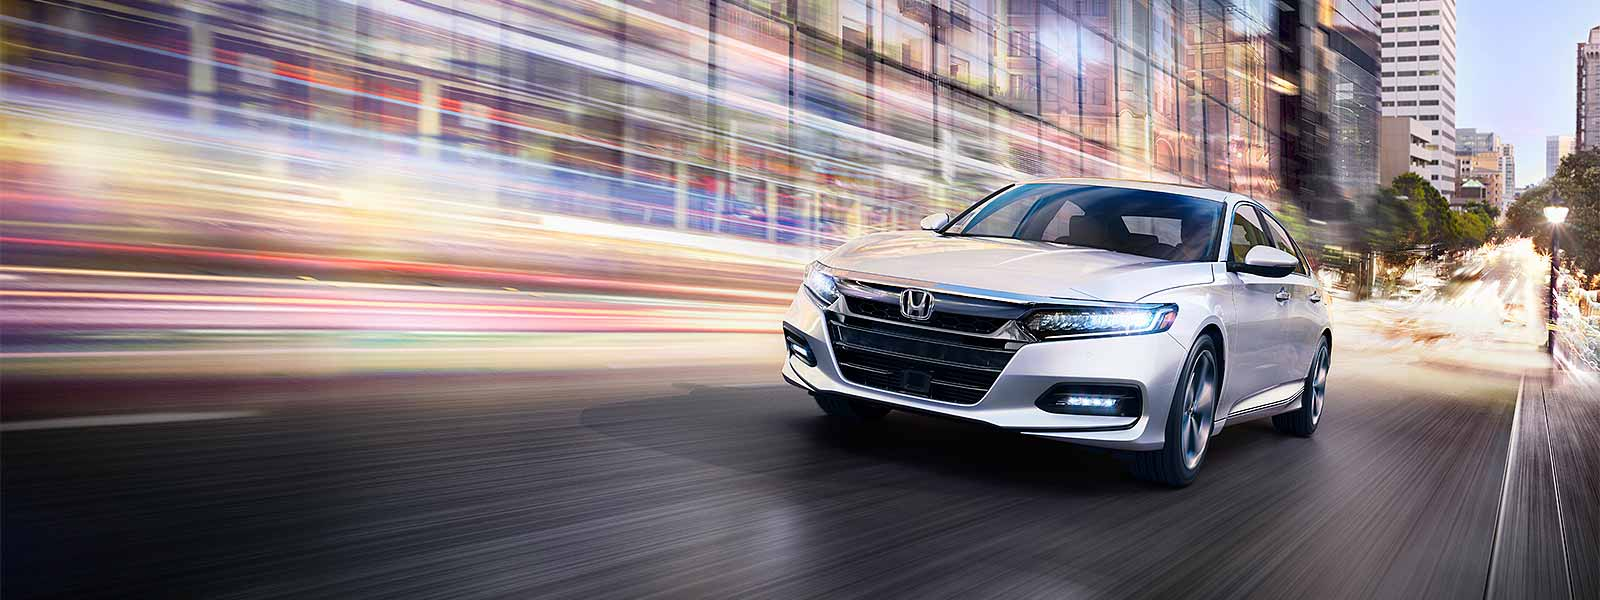 Honda Accord Lease deals Chicago